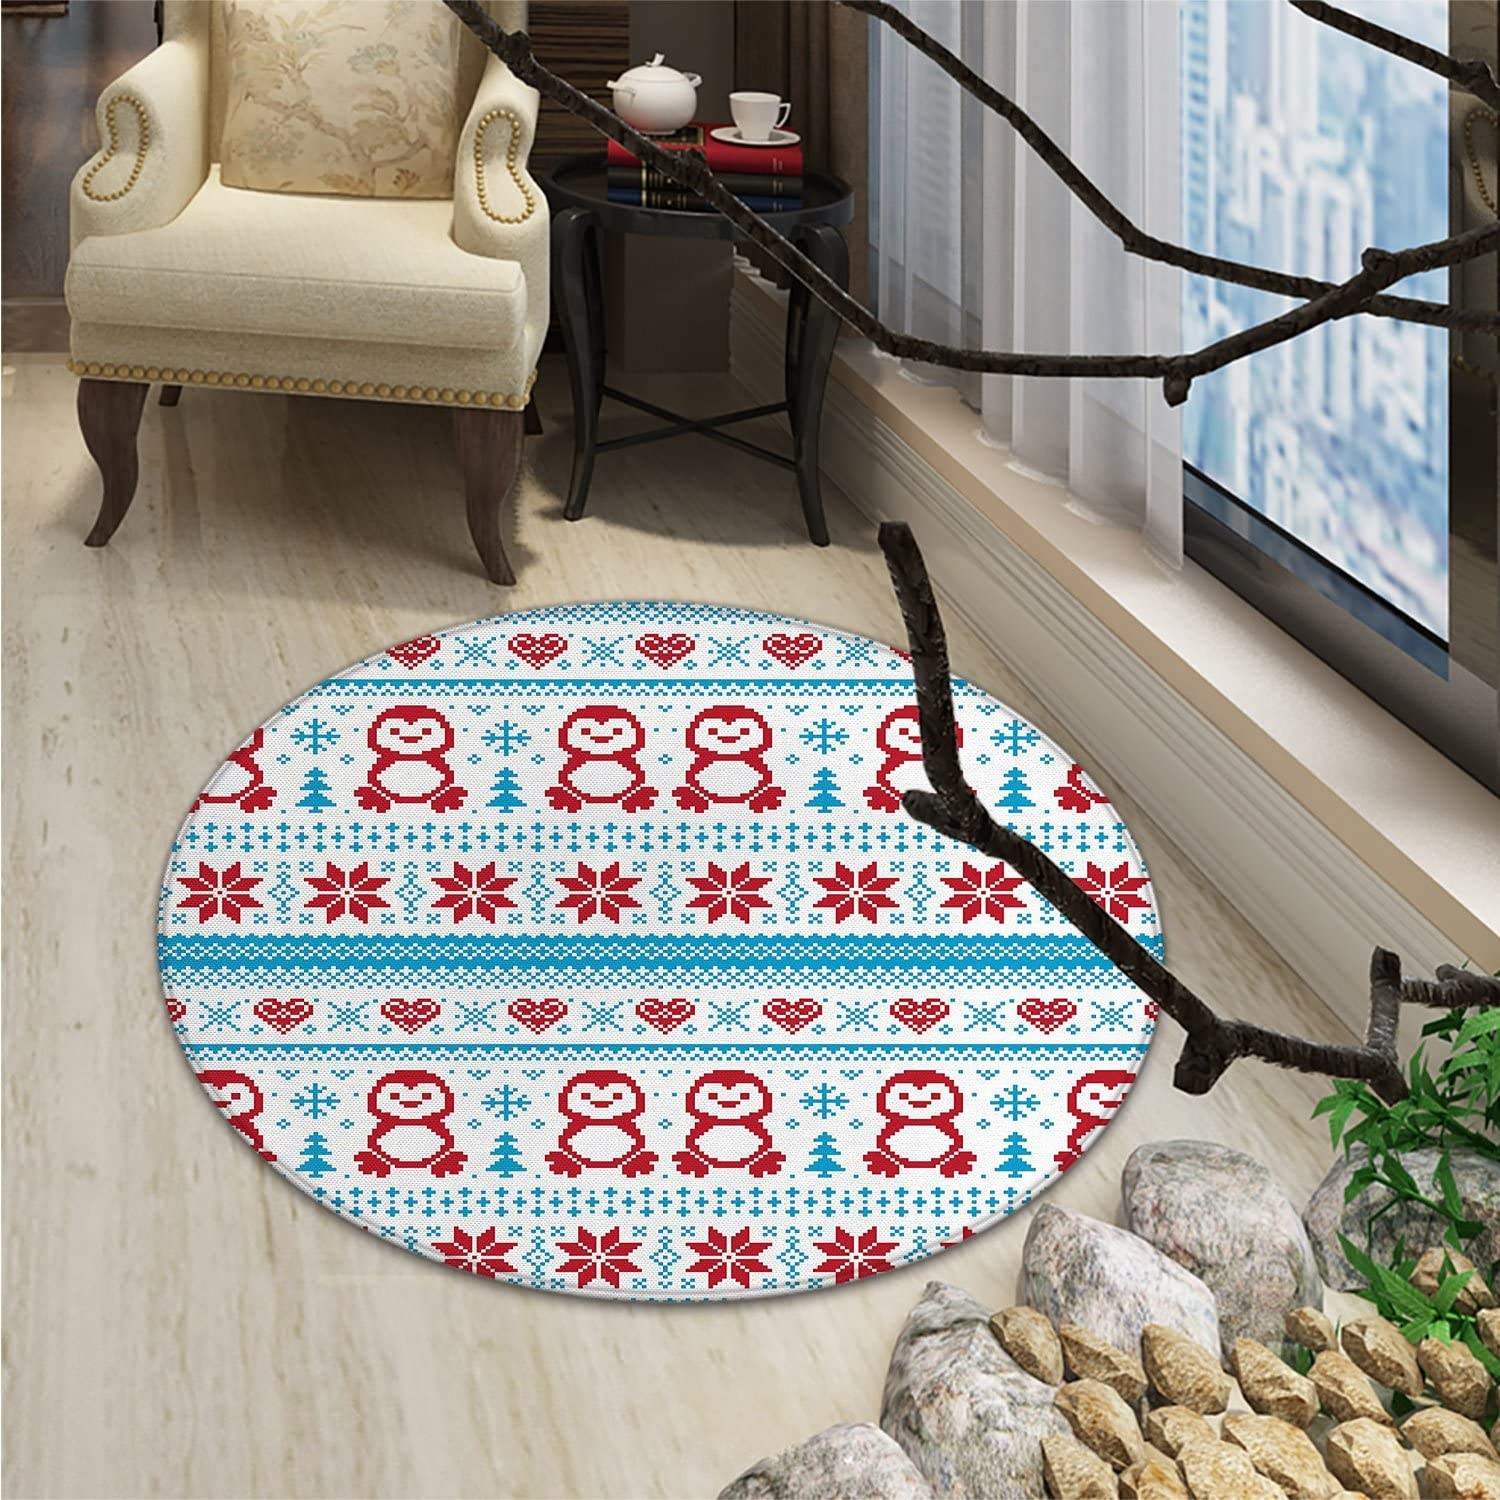 Nordic Print Rug Ornate Penguins with Hearts Abstract Nature Elements Trees SnowflakesOriental Floor and Carpets Ruby Pale bluee White